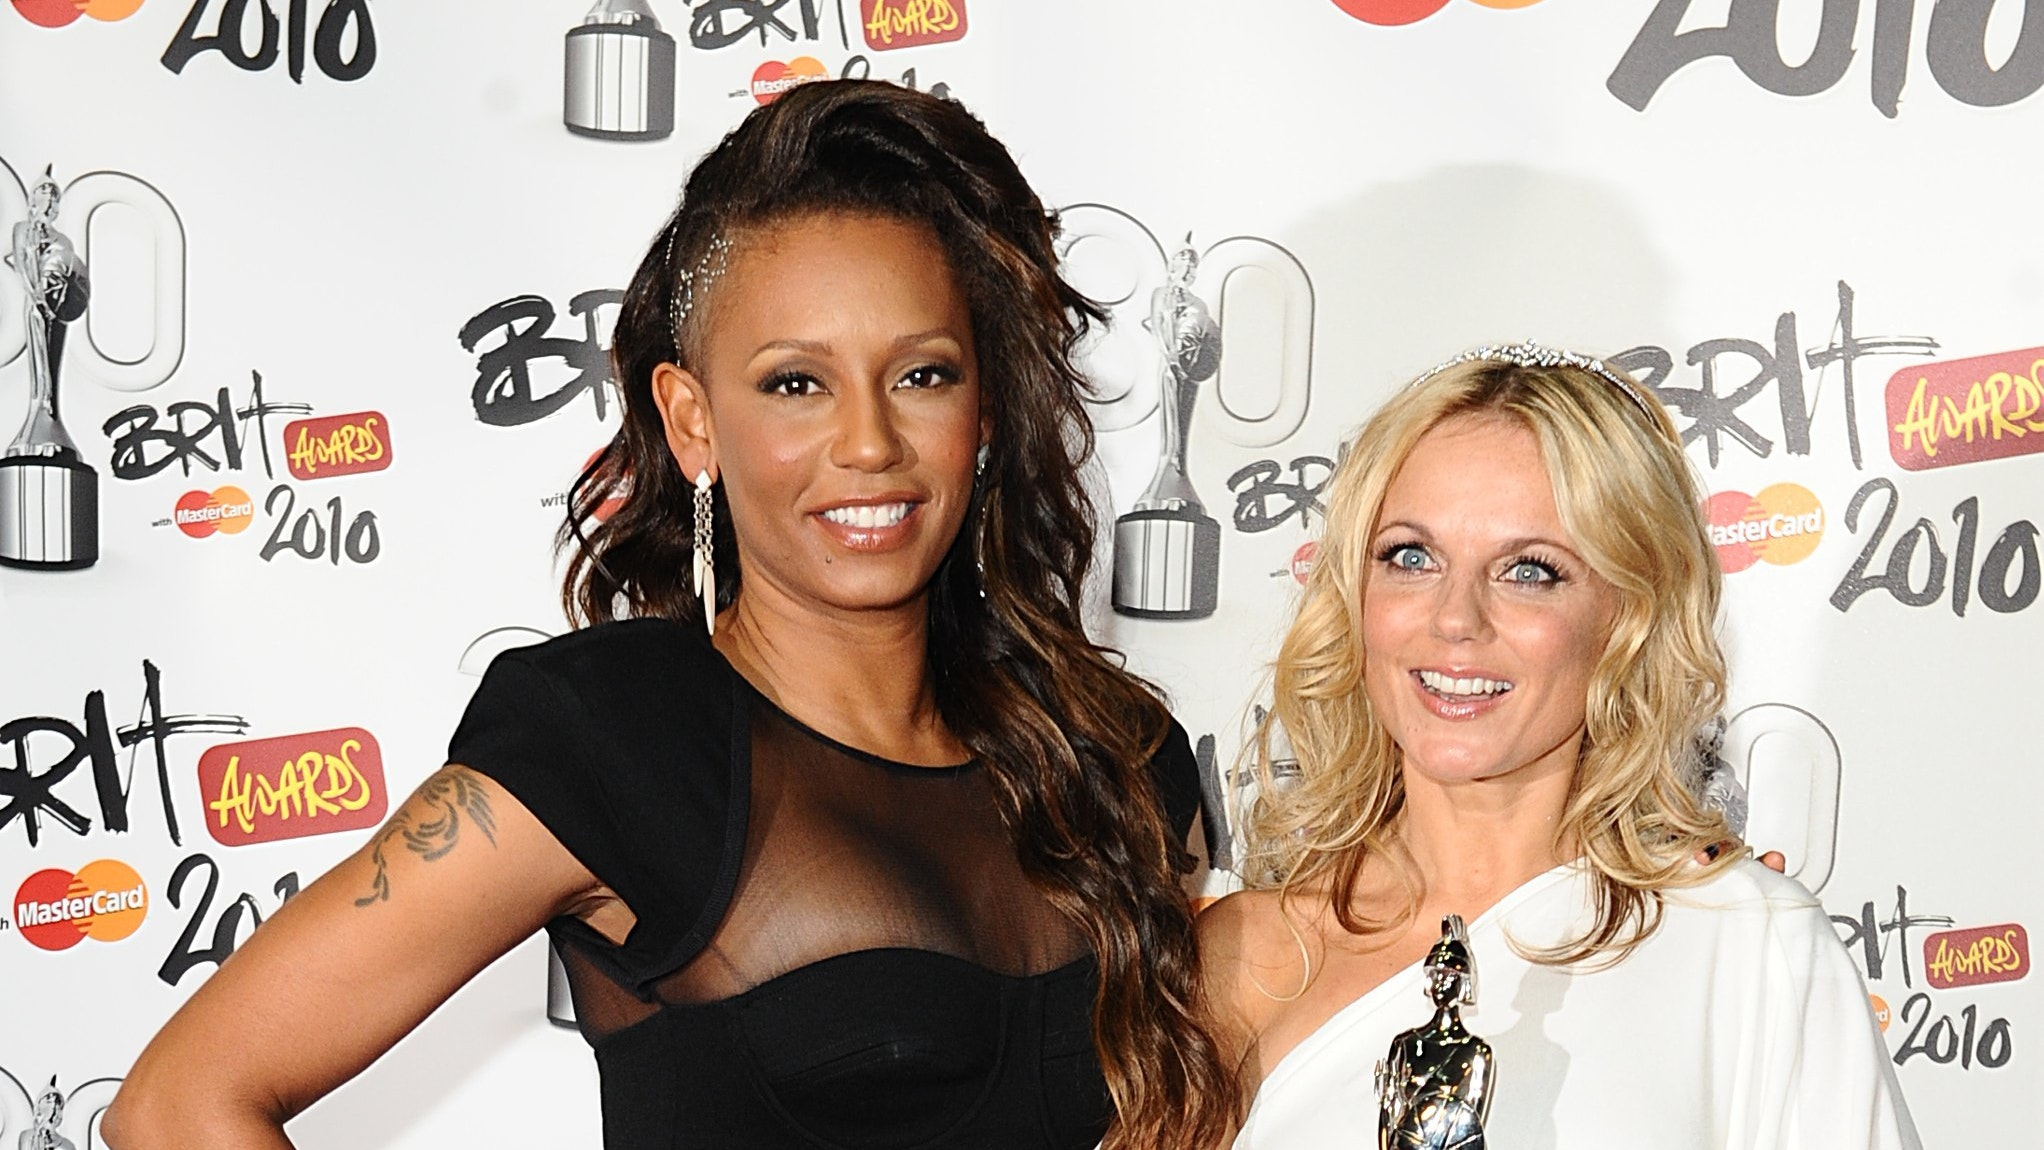 Geri Horner said Mel B had 'great boobs' in unearthed interview